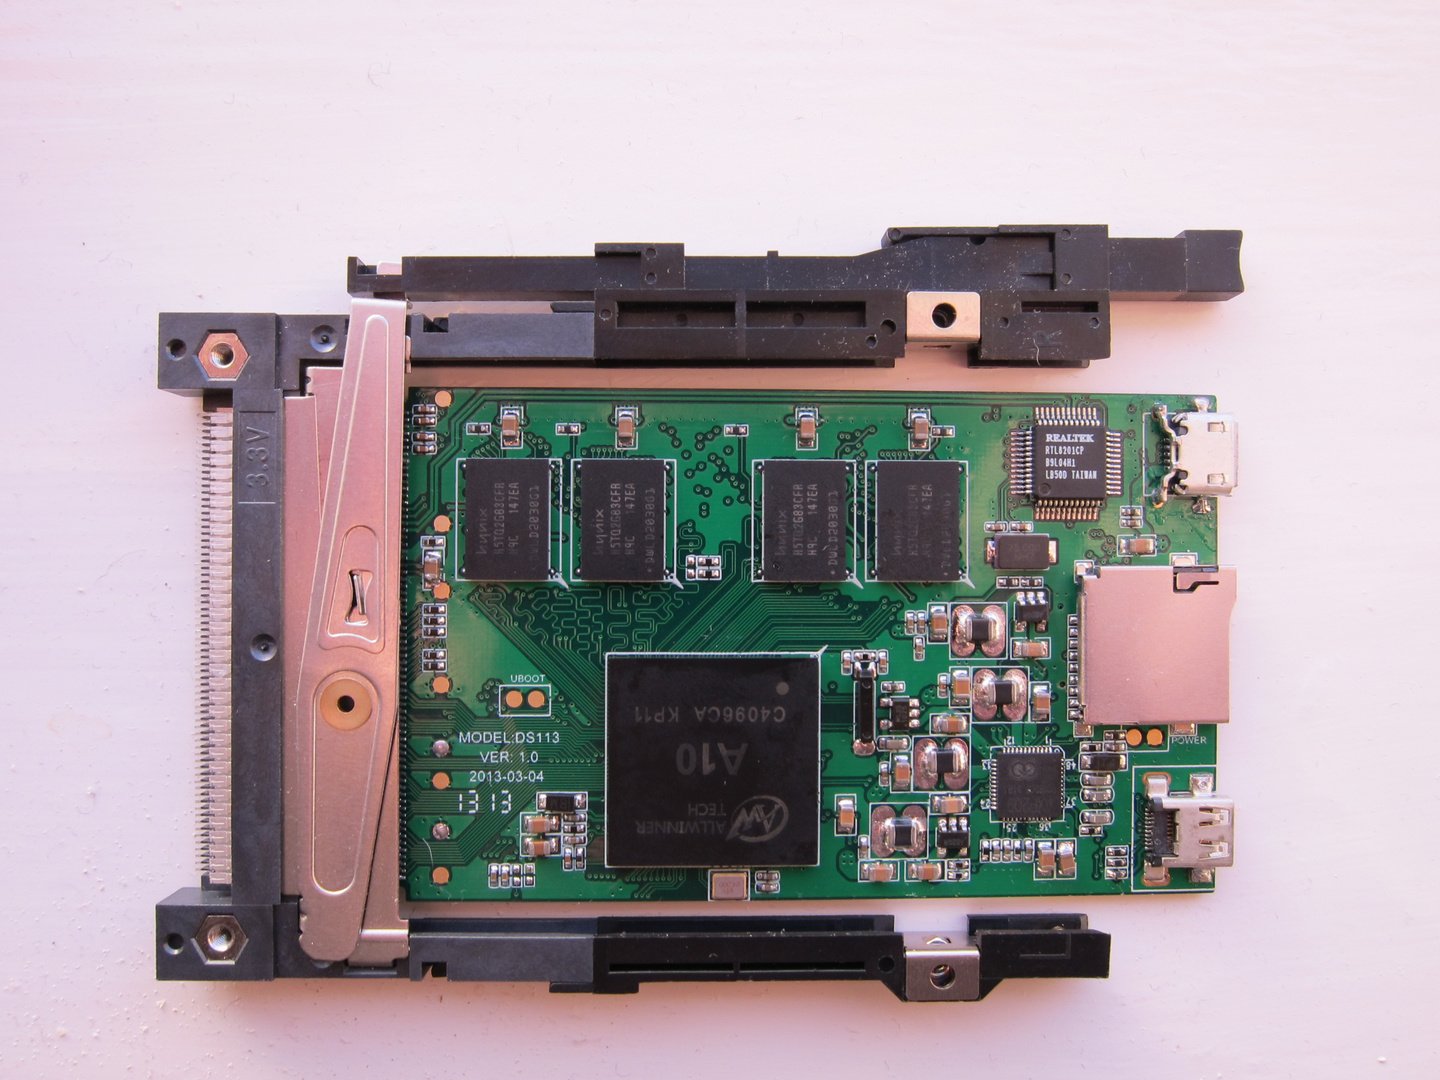 EOMA-68 CPU Card, front